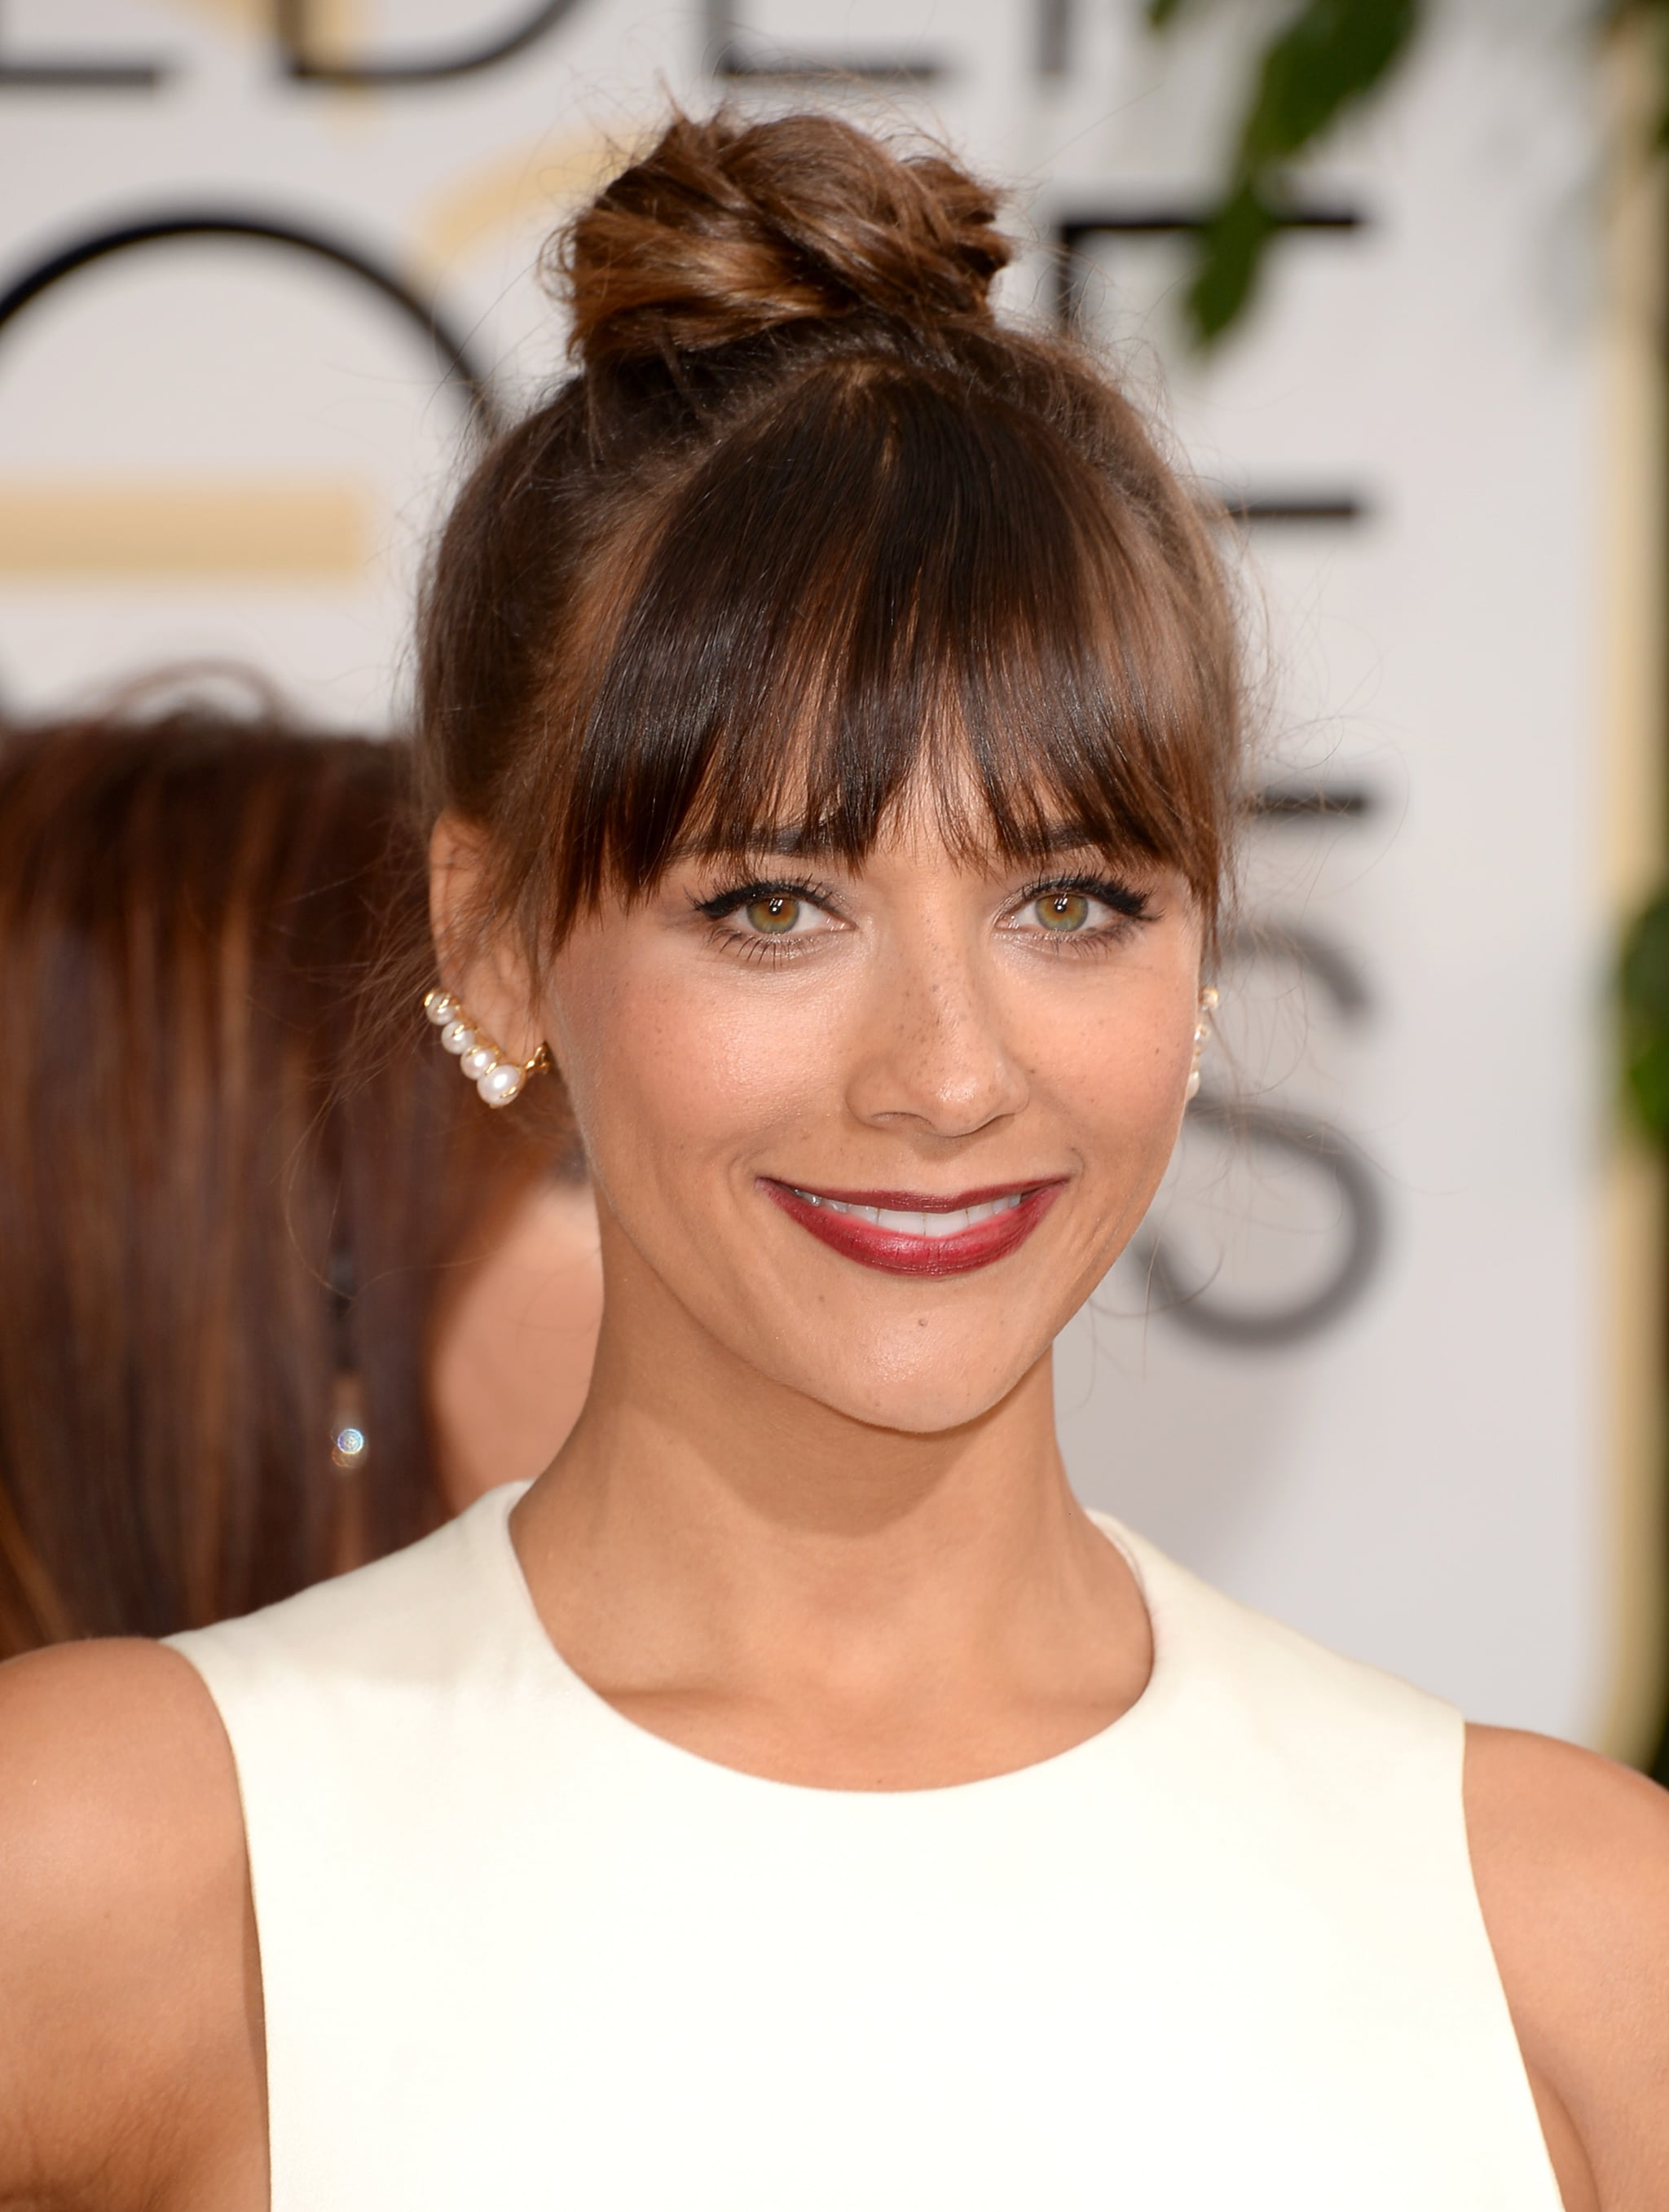 Think pearls can't be edgy? Well then you haven't seen Rashida Jones's Ana Khouri Patricia pearl ear cuff earrings yet.